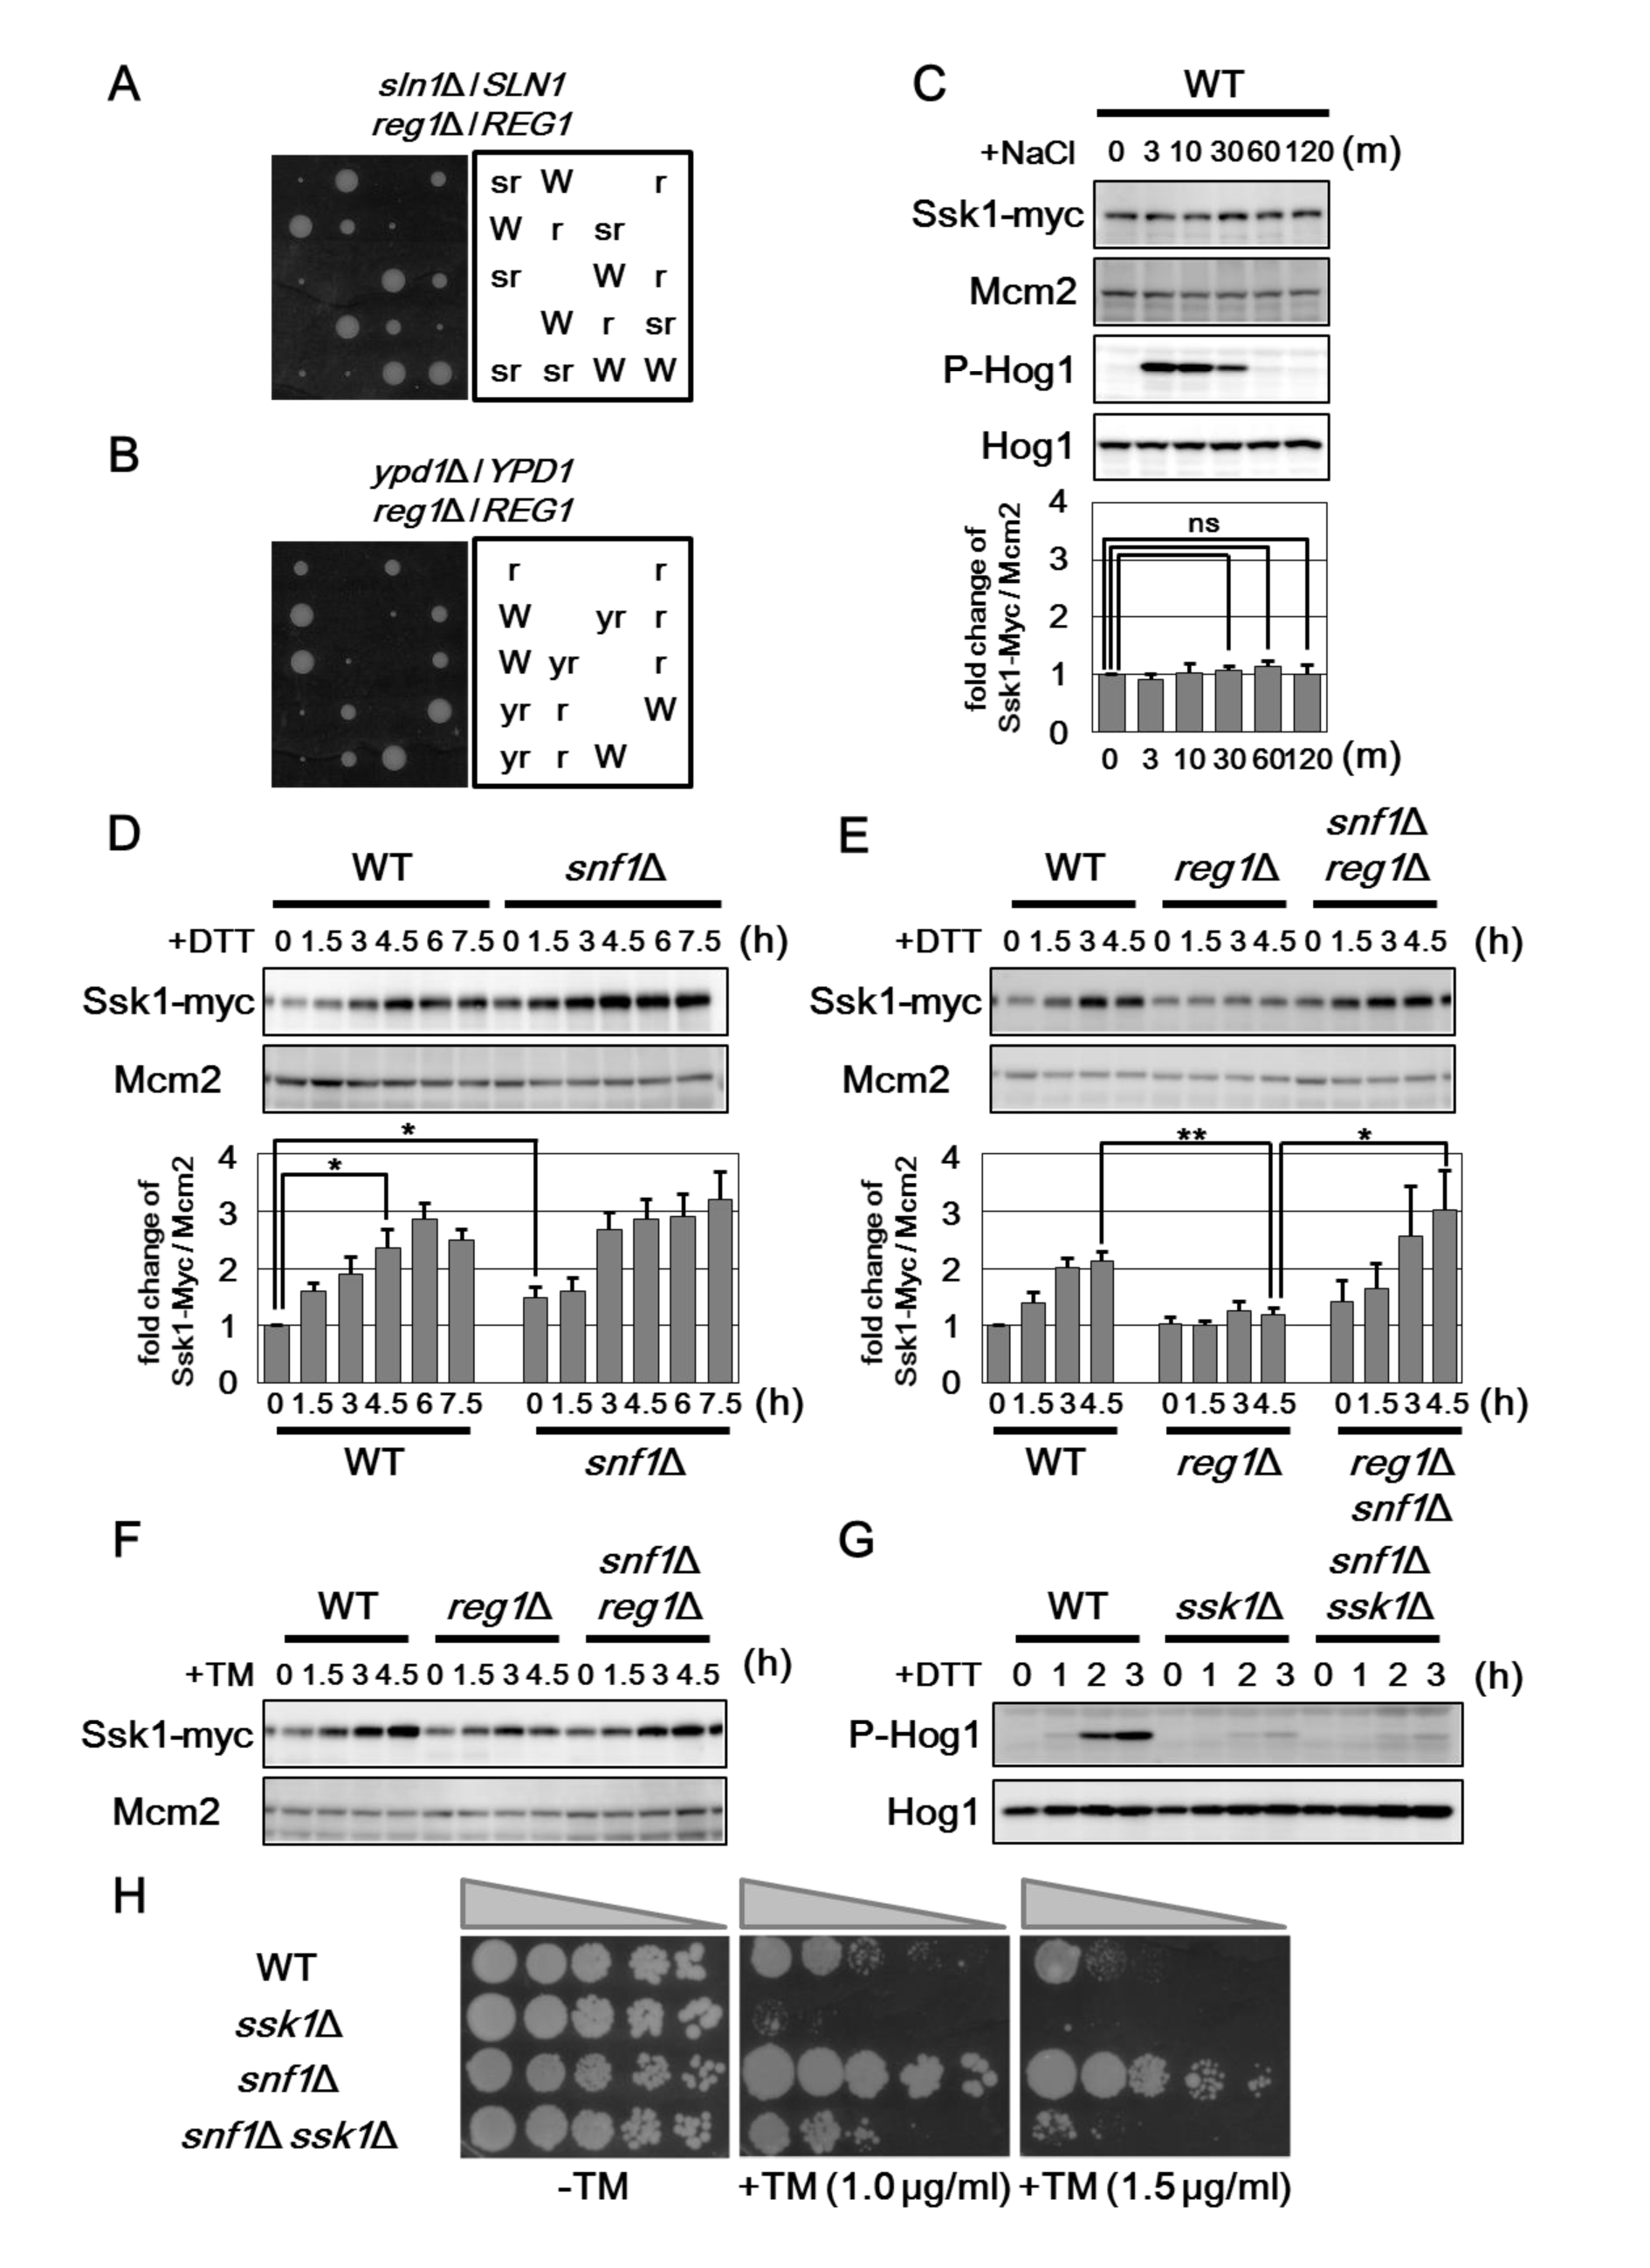 Snf1 downregulates the protein level of Ssk1.